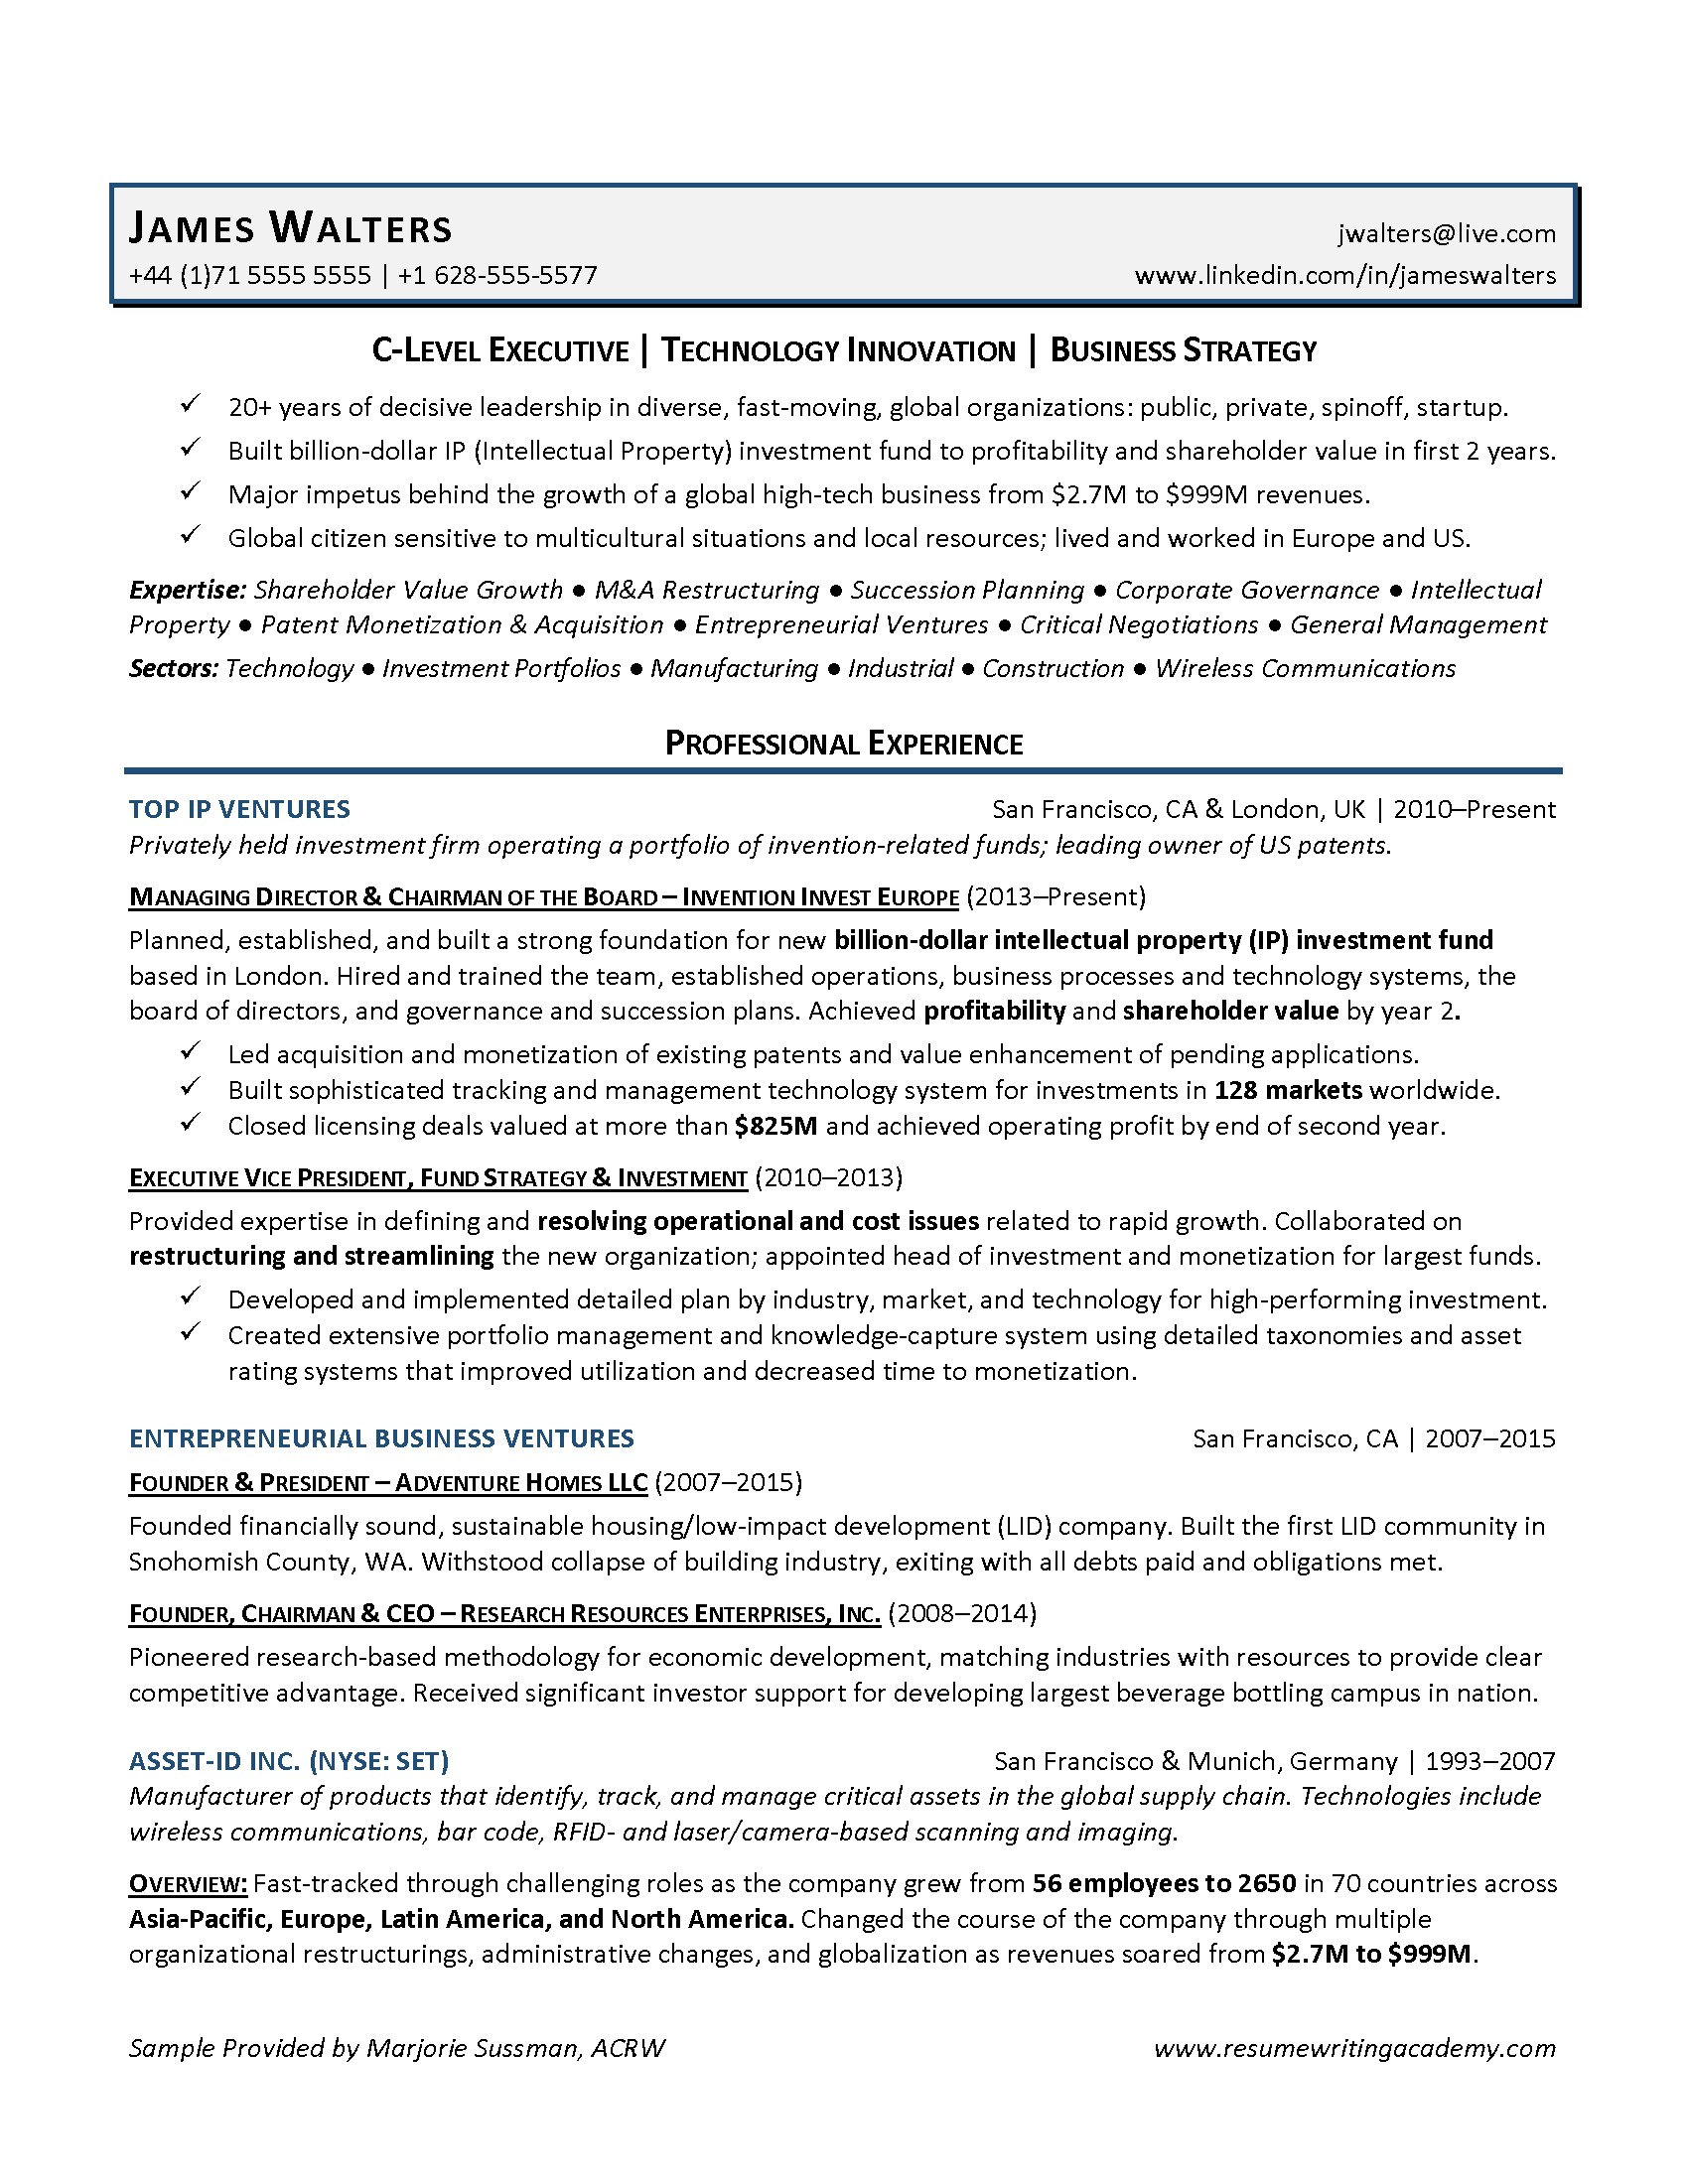 Strategy Resume Resume Writing Academy 3 Strategies For Executive Resumes